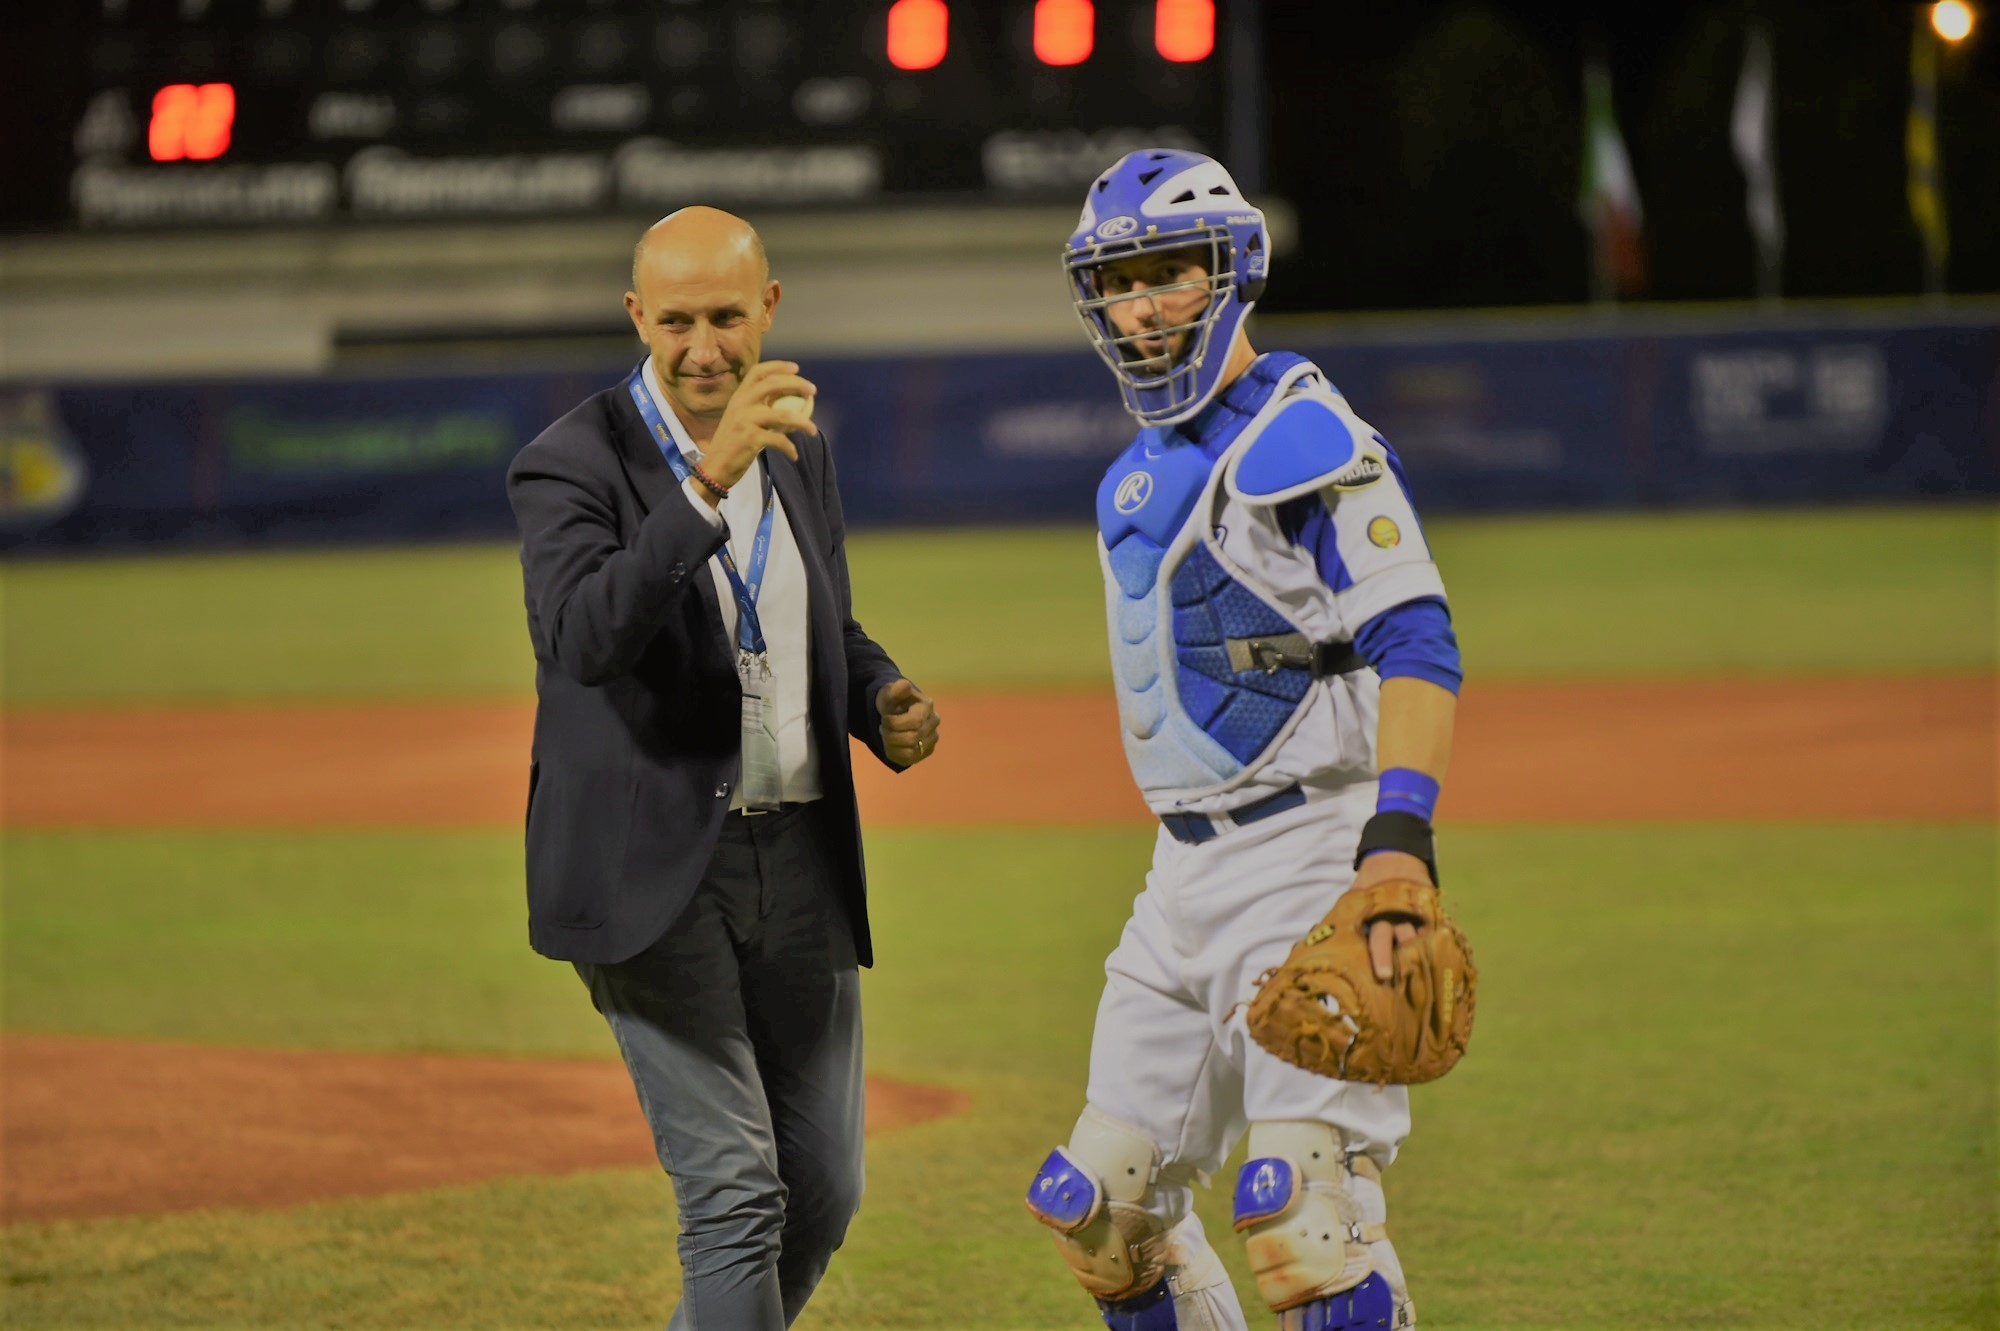 Michele Alinovi, the Commissioner of the City of Parma for planning and development, made the ceremonial first pitch